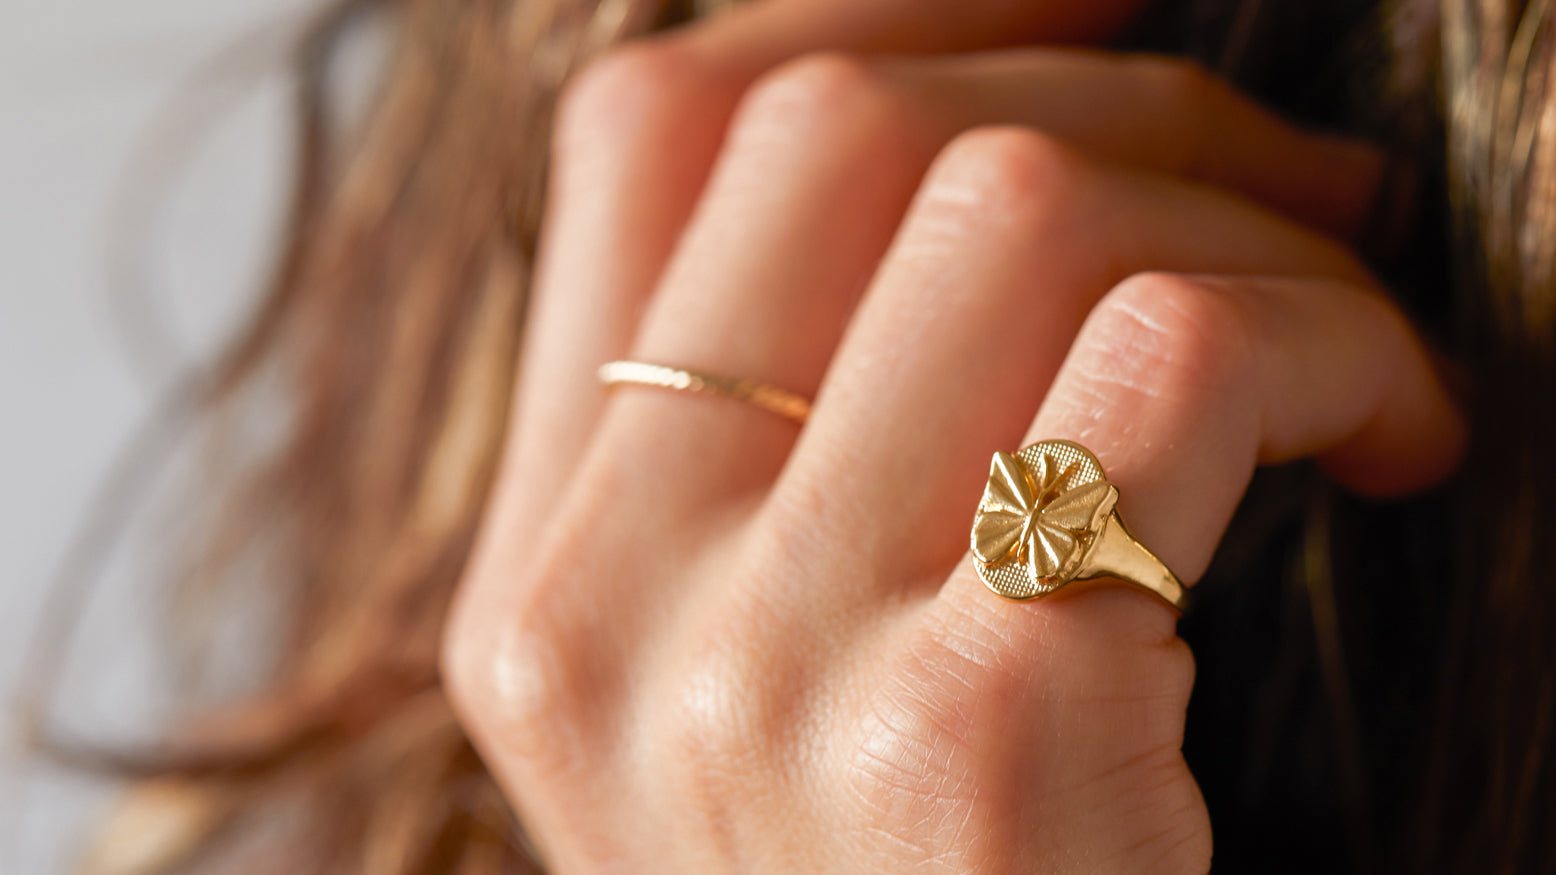 Signet Rings: What Are They and What Are They Used For?